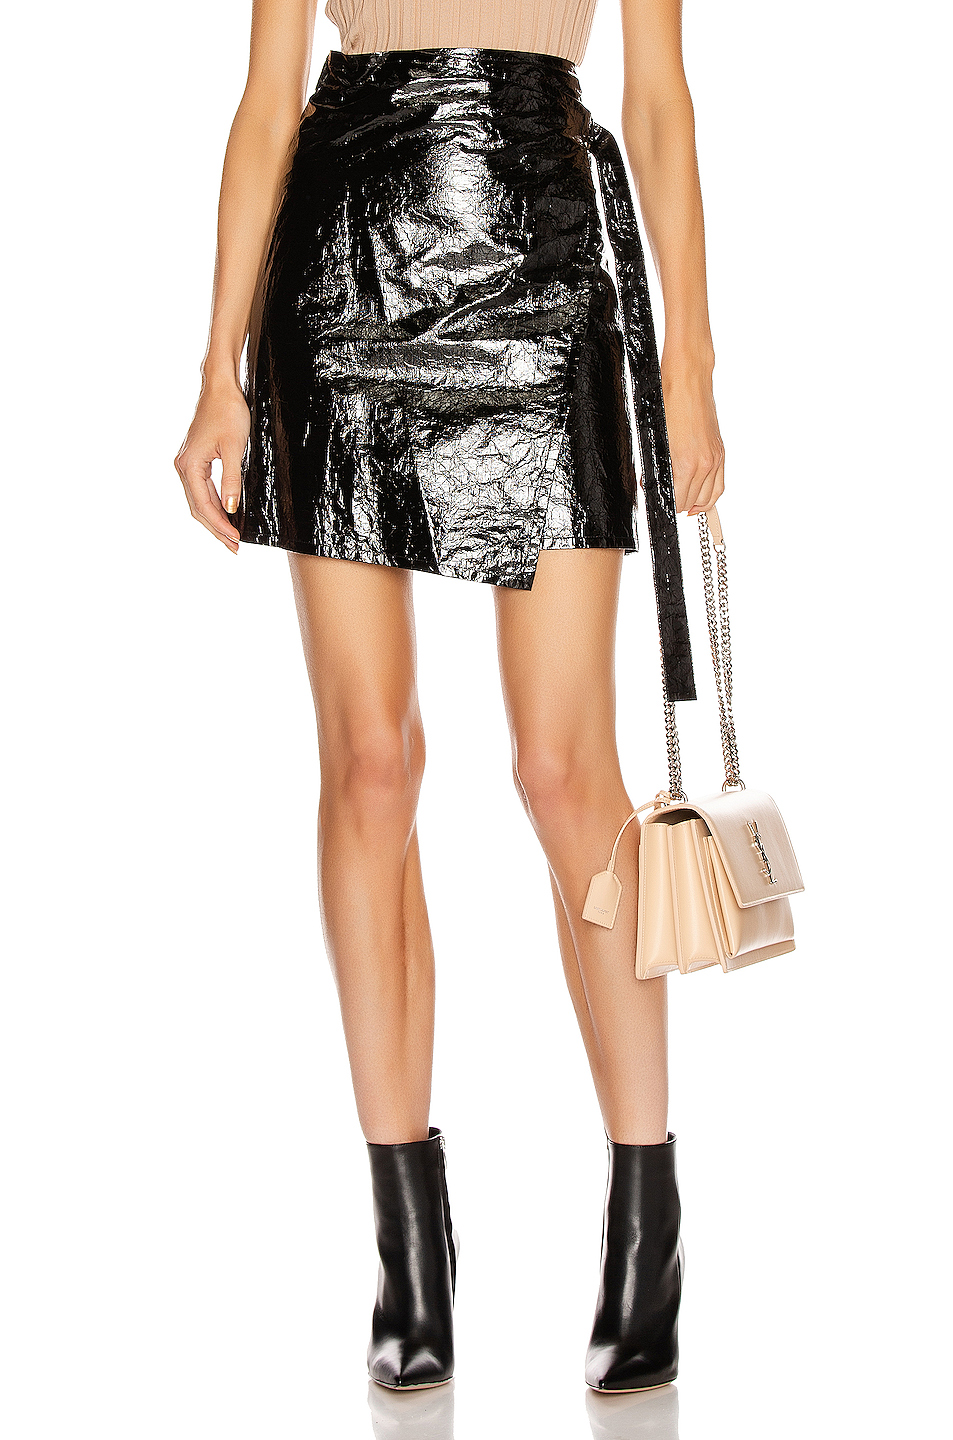 fc3a3e0e99 Buy Original Helmut Lang Mylar Wrap Skirt at Indonesia | BOBOBOBO